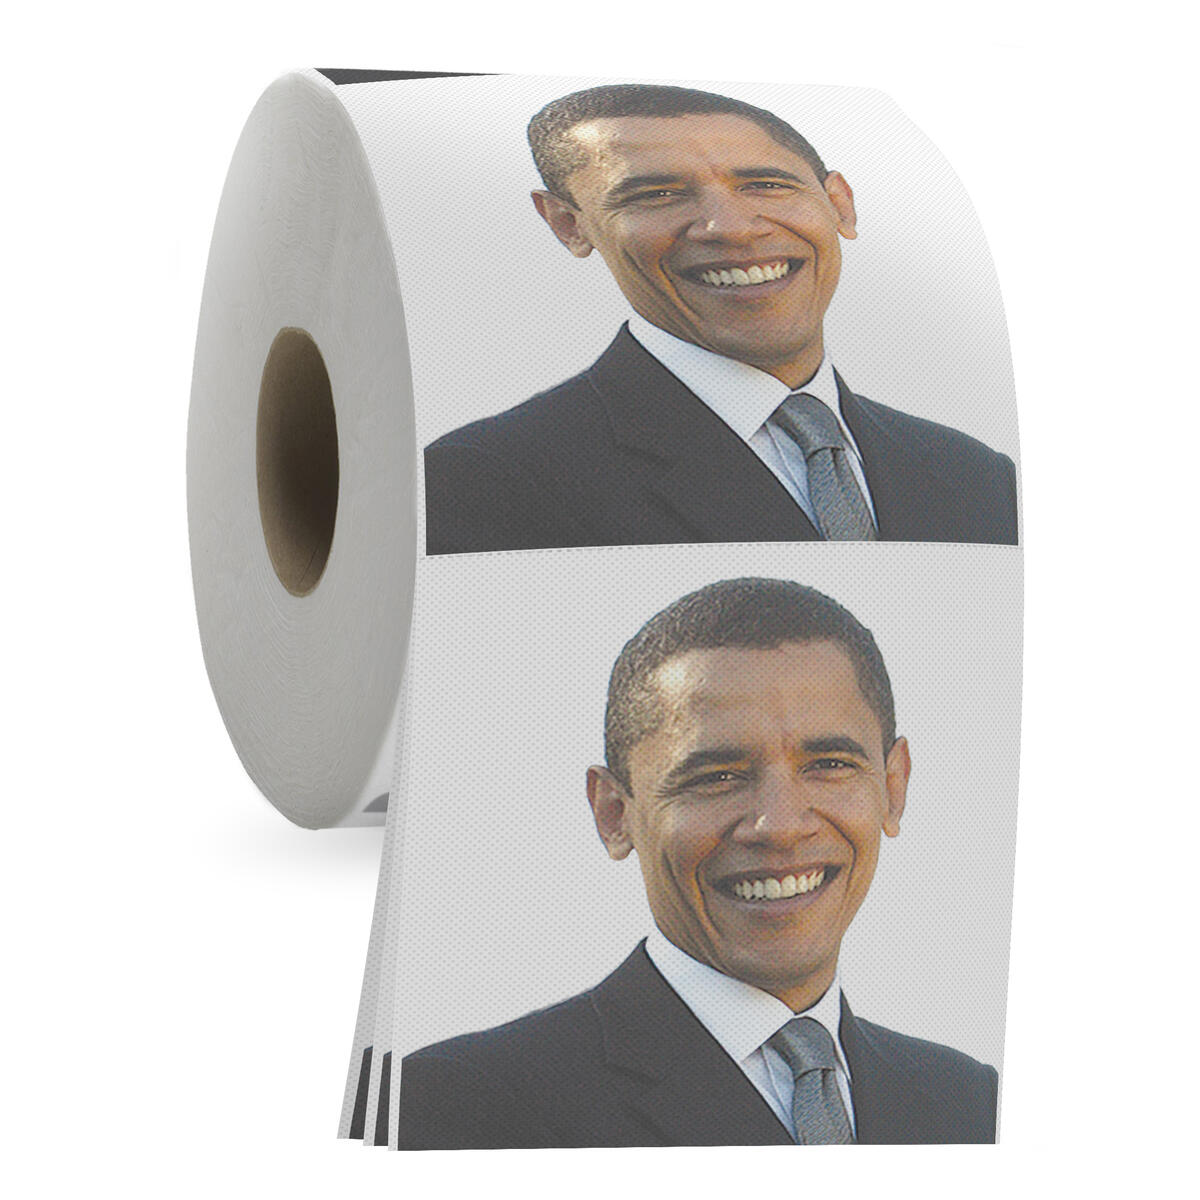 Obama Toilet Paper Roll